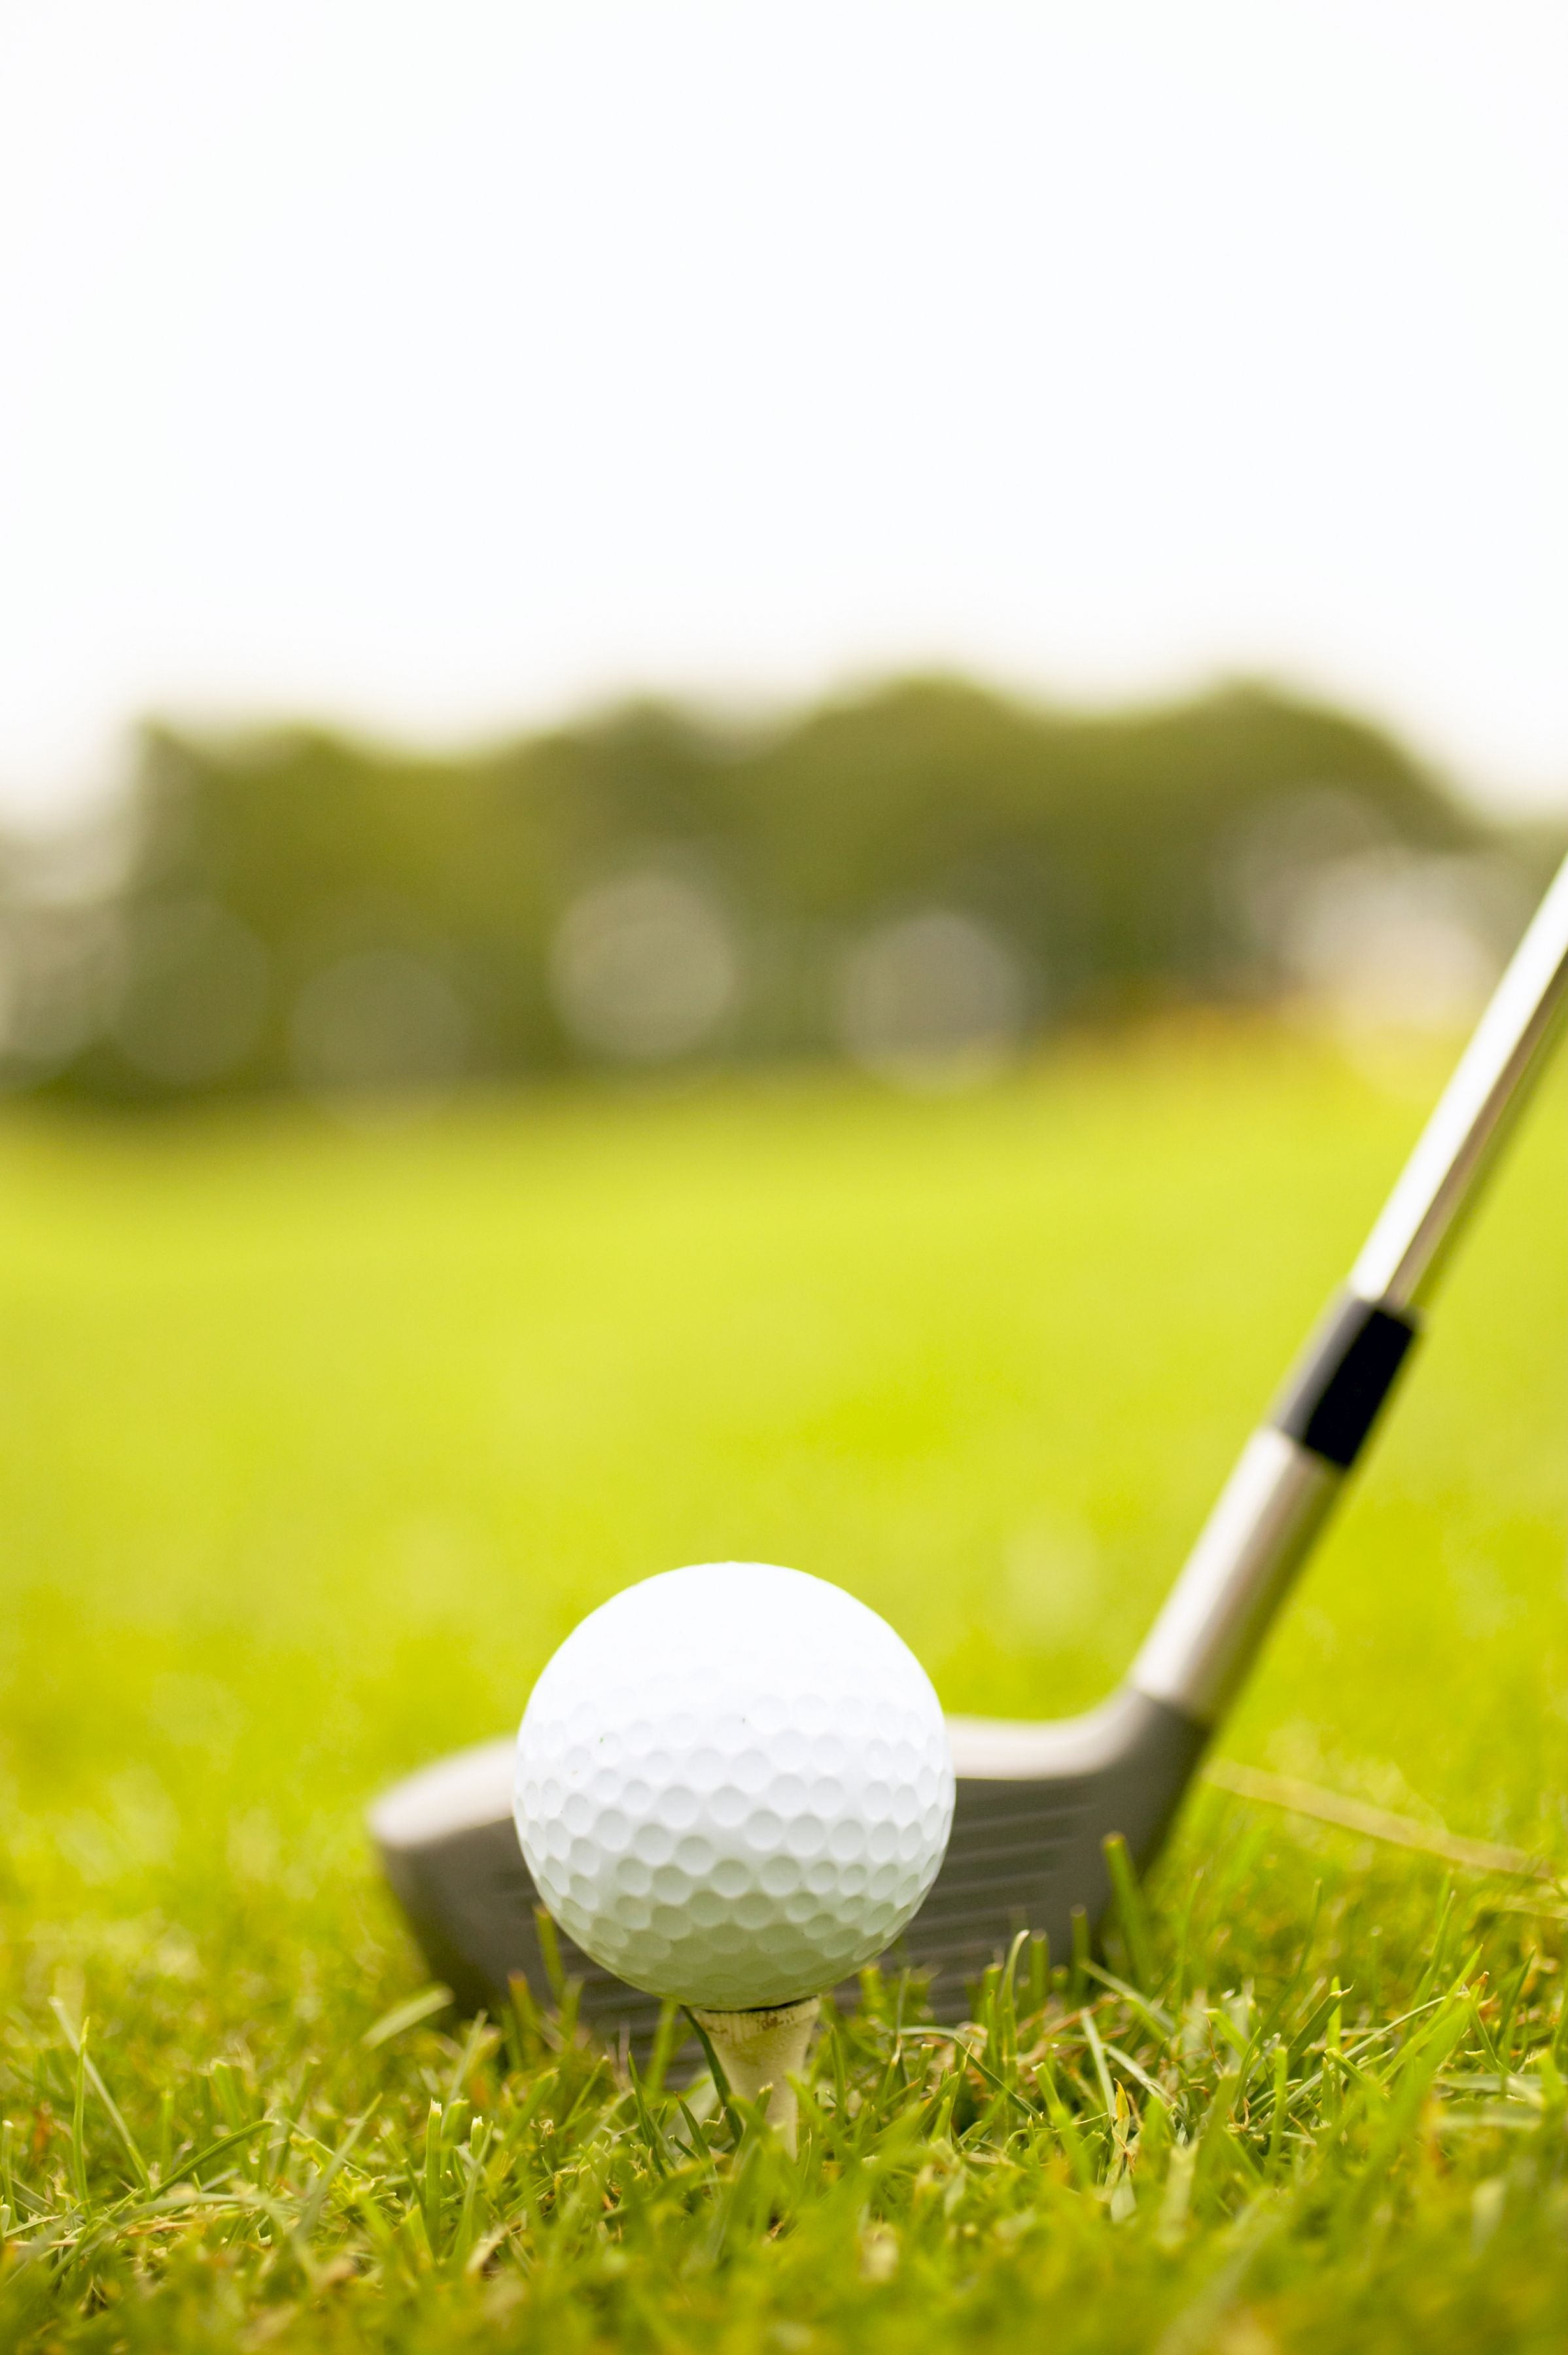 What Is The Meaning Of Golf Tee Colors